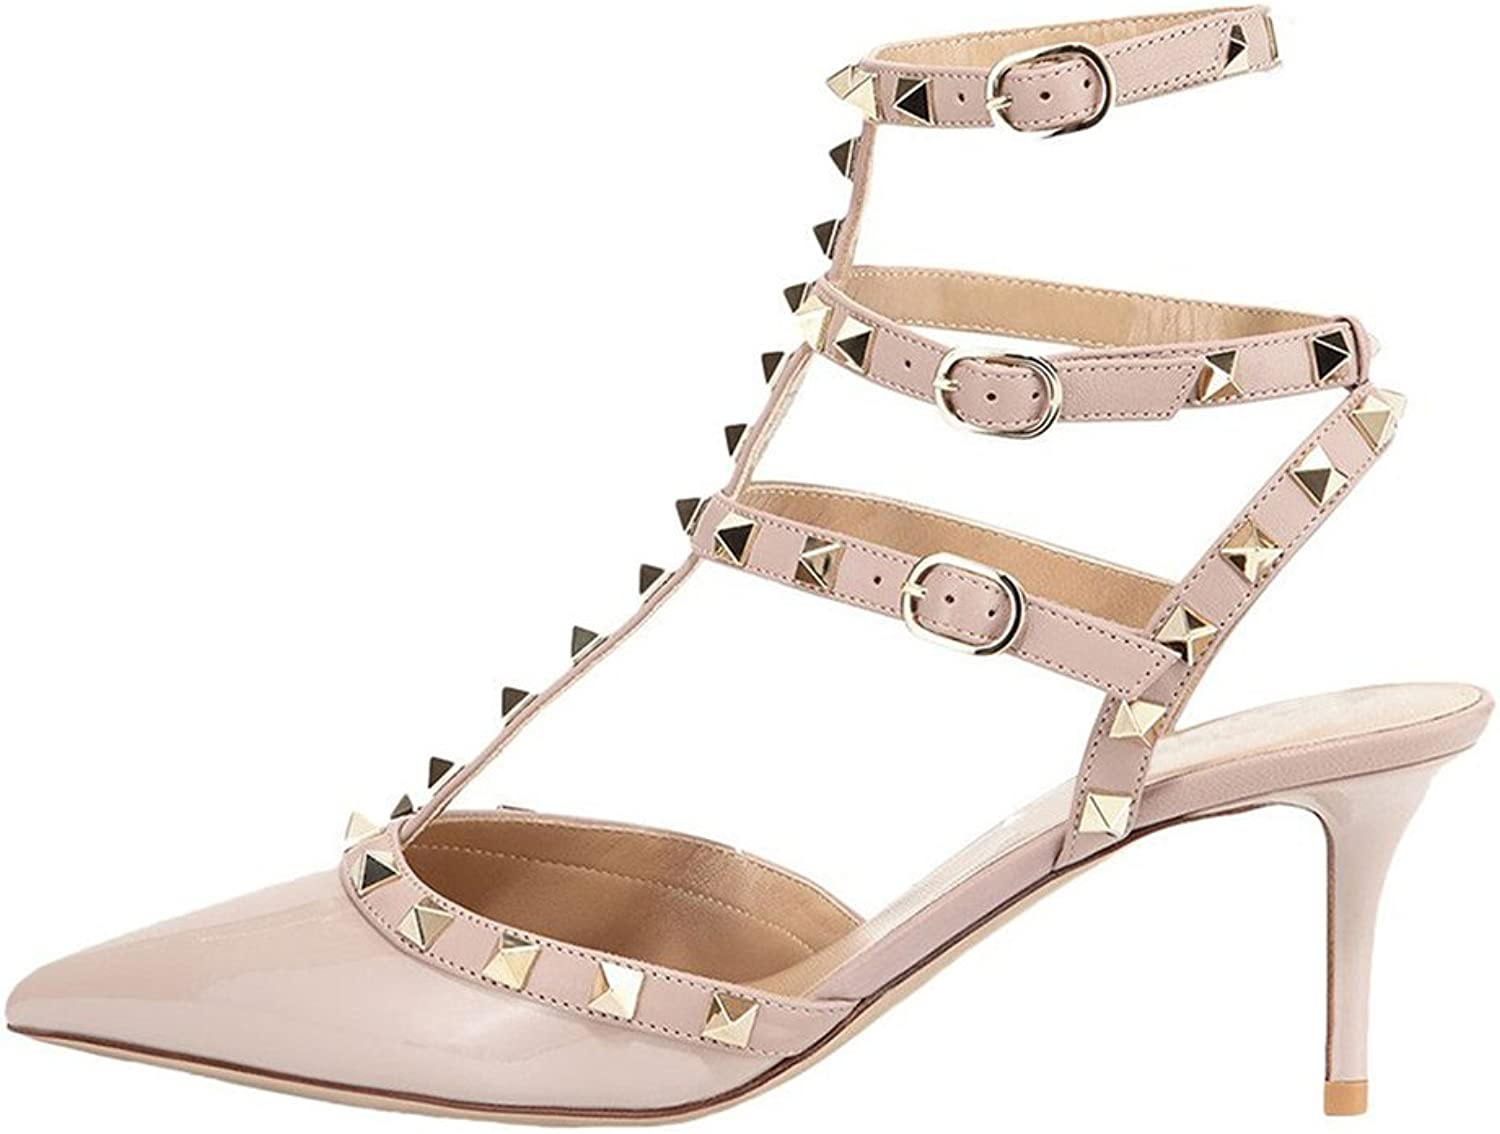 MERUMOTE Women's Strappy Heeled Sandals Double Buckle Thin Rivets Dress Sandals